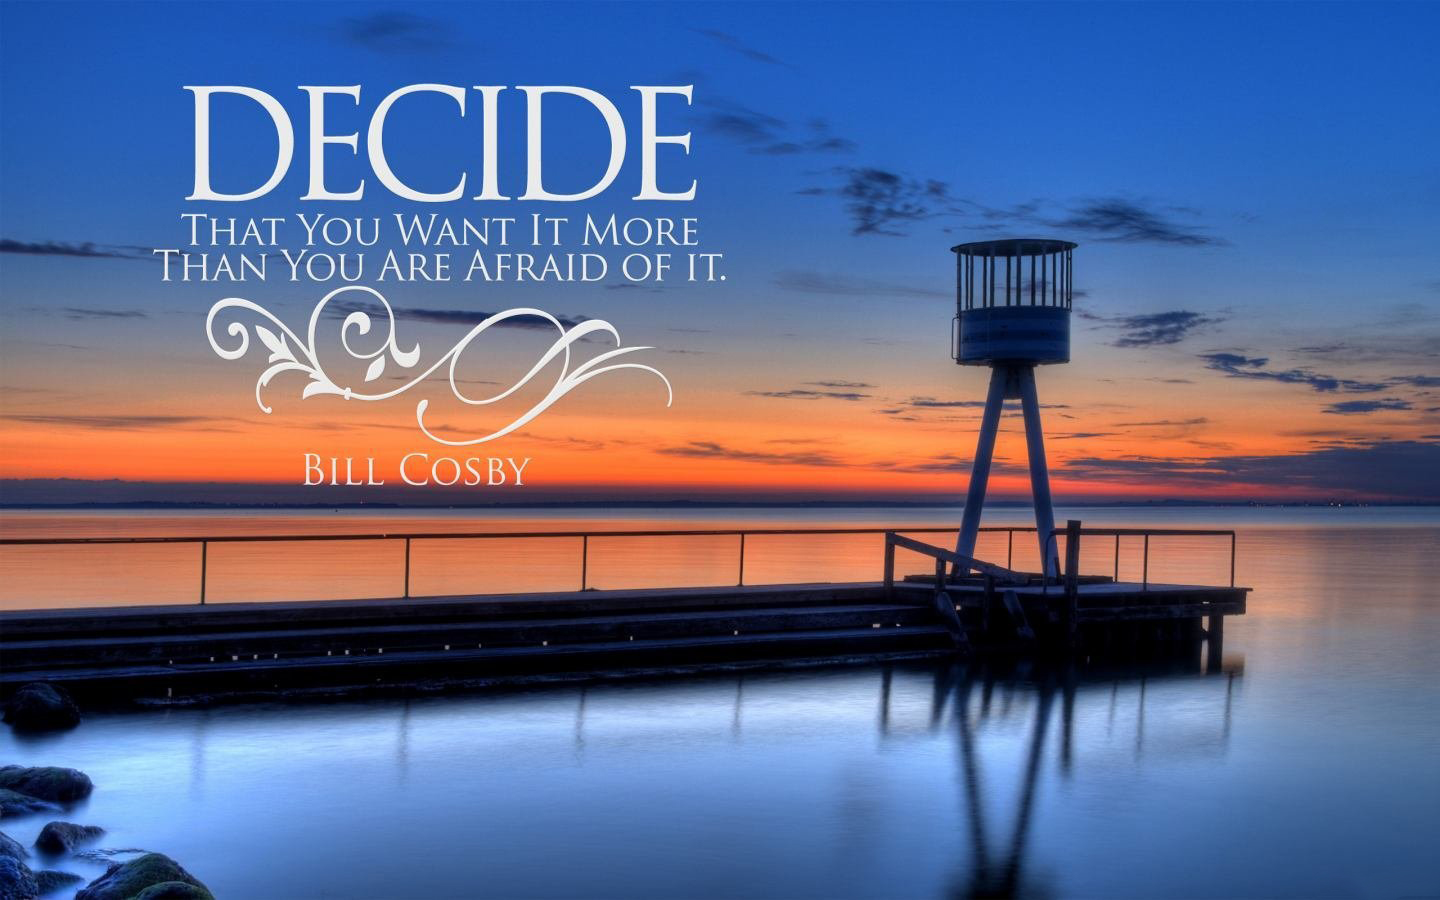 inspirational life quotes wallpapers desktop and backgrounds 1 1440x900